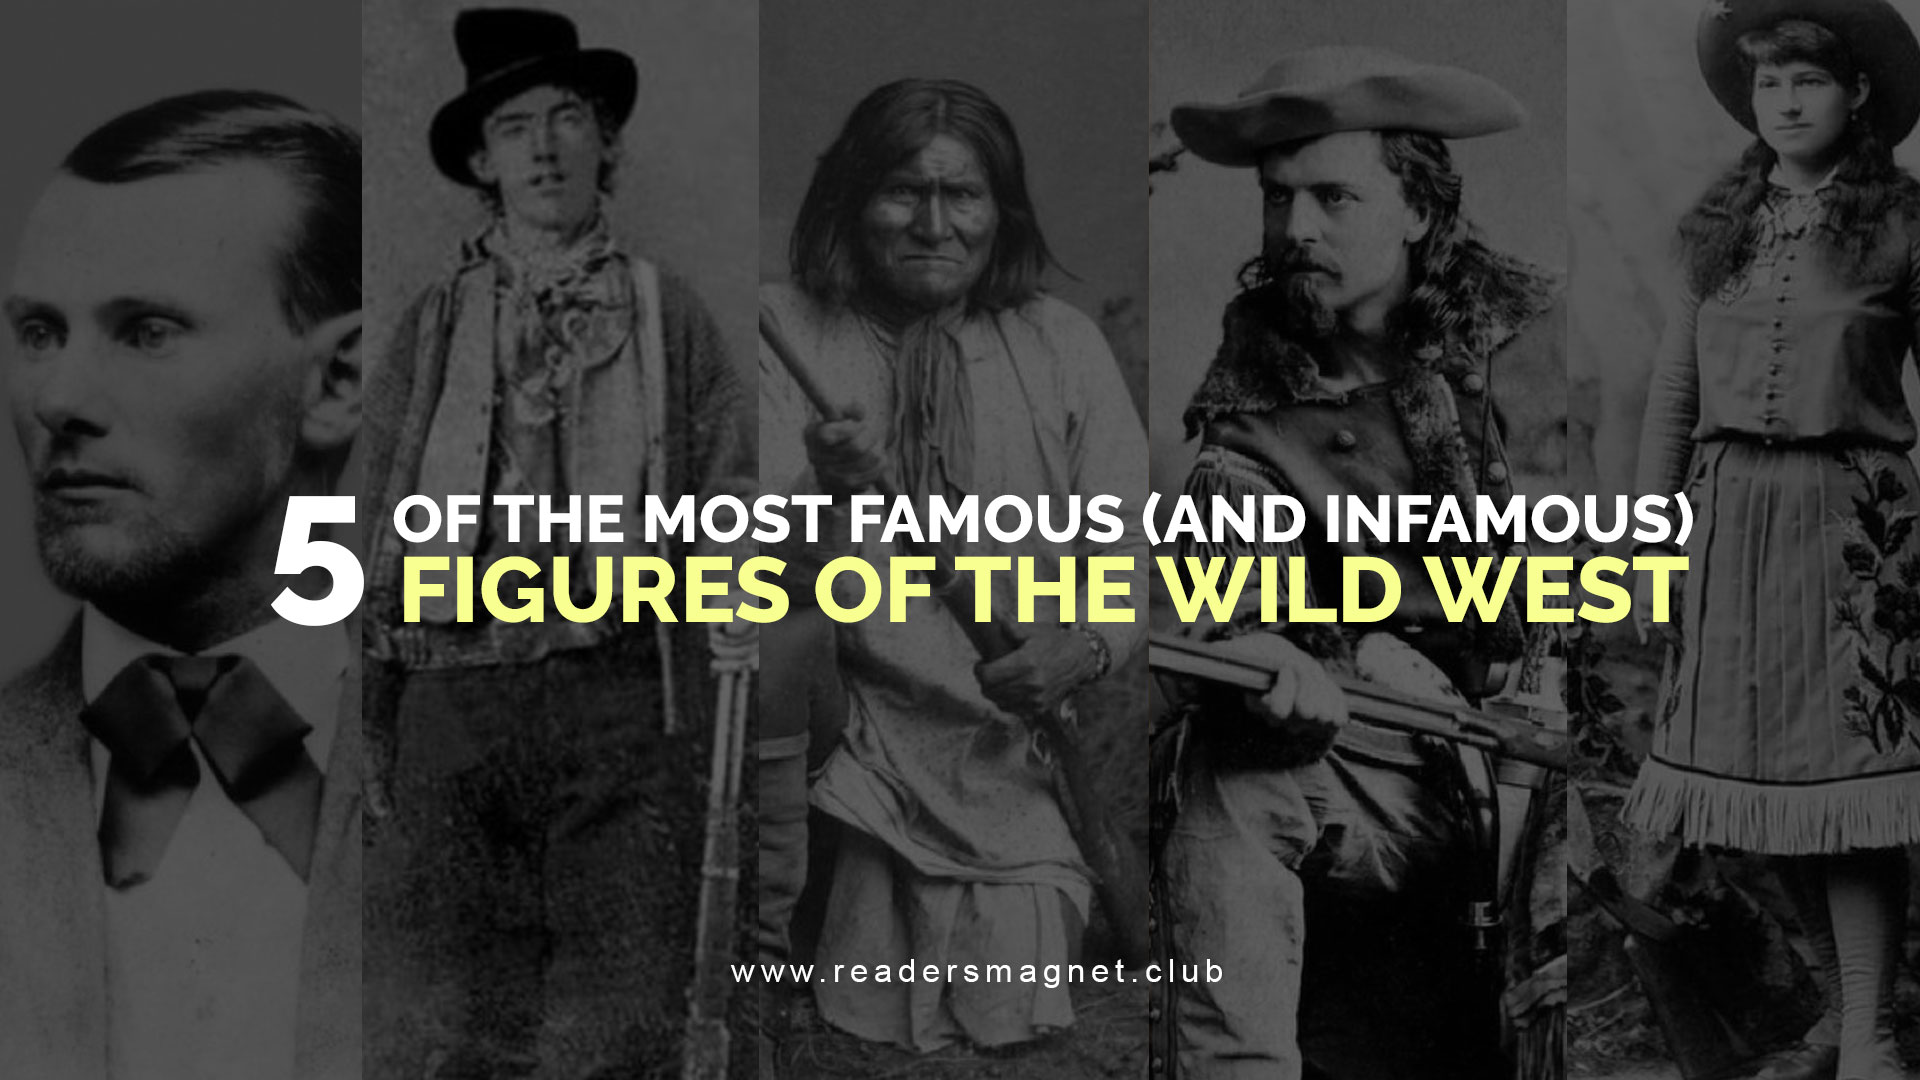 5 of the Most Famous (and Infamous) Figures of the Wild West